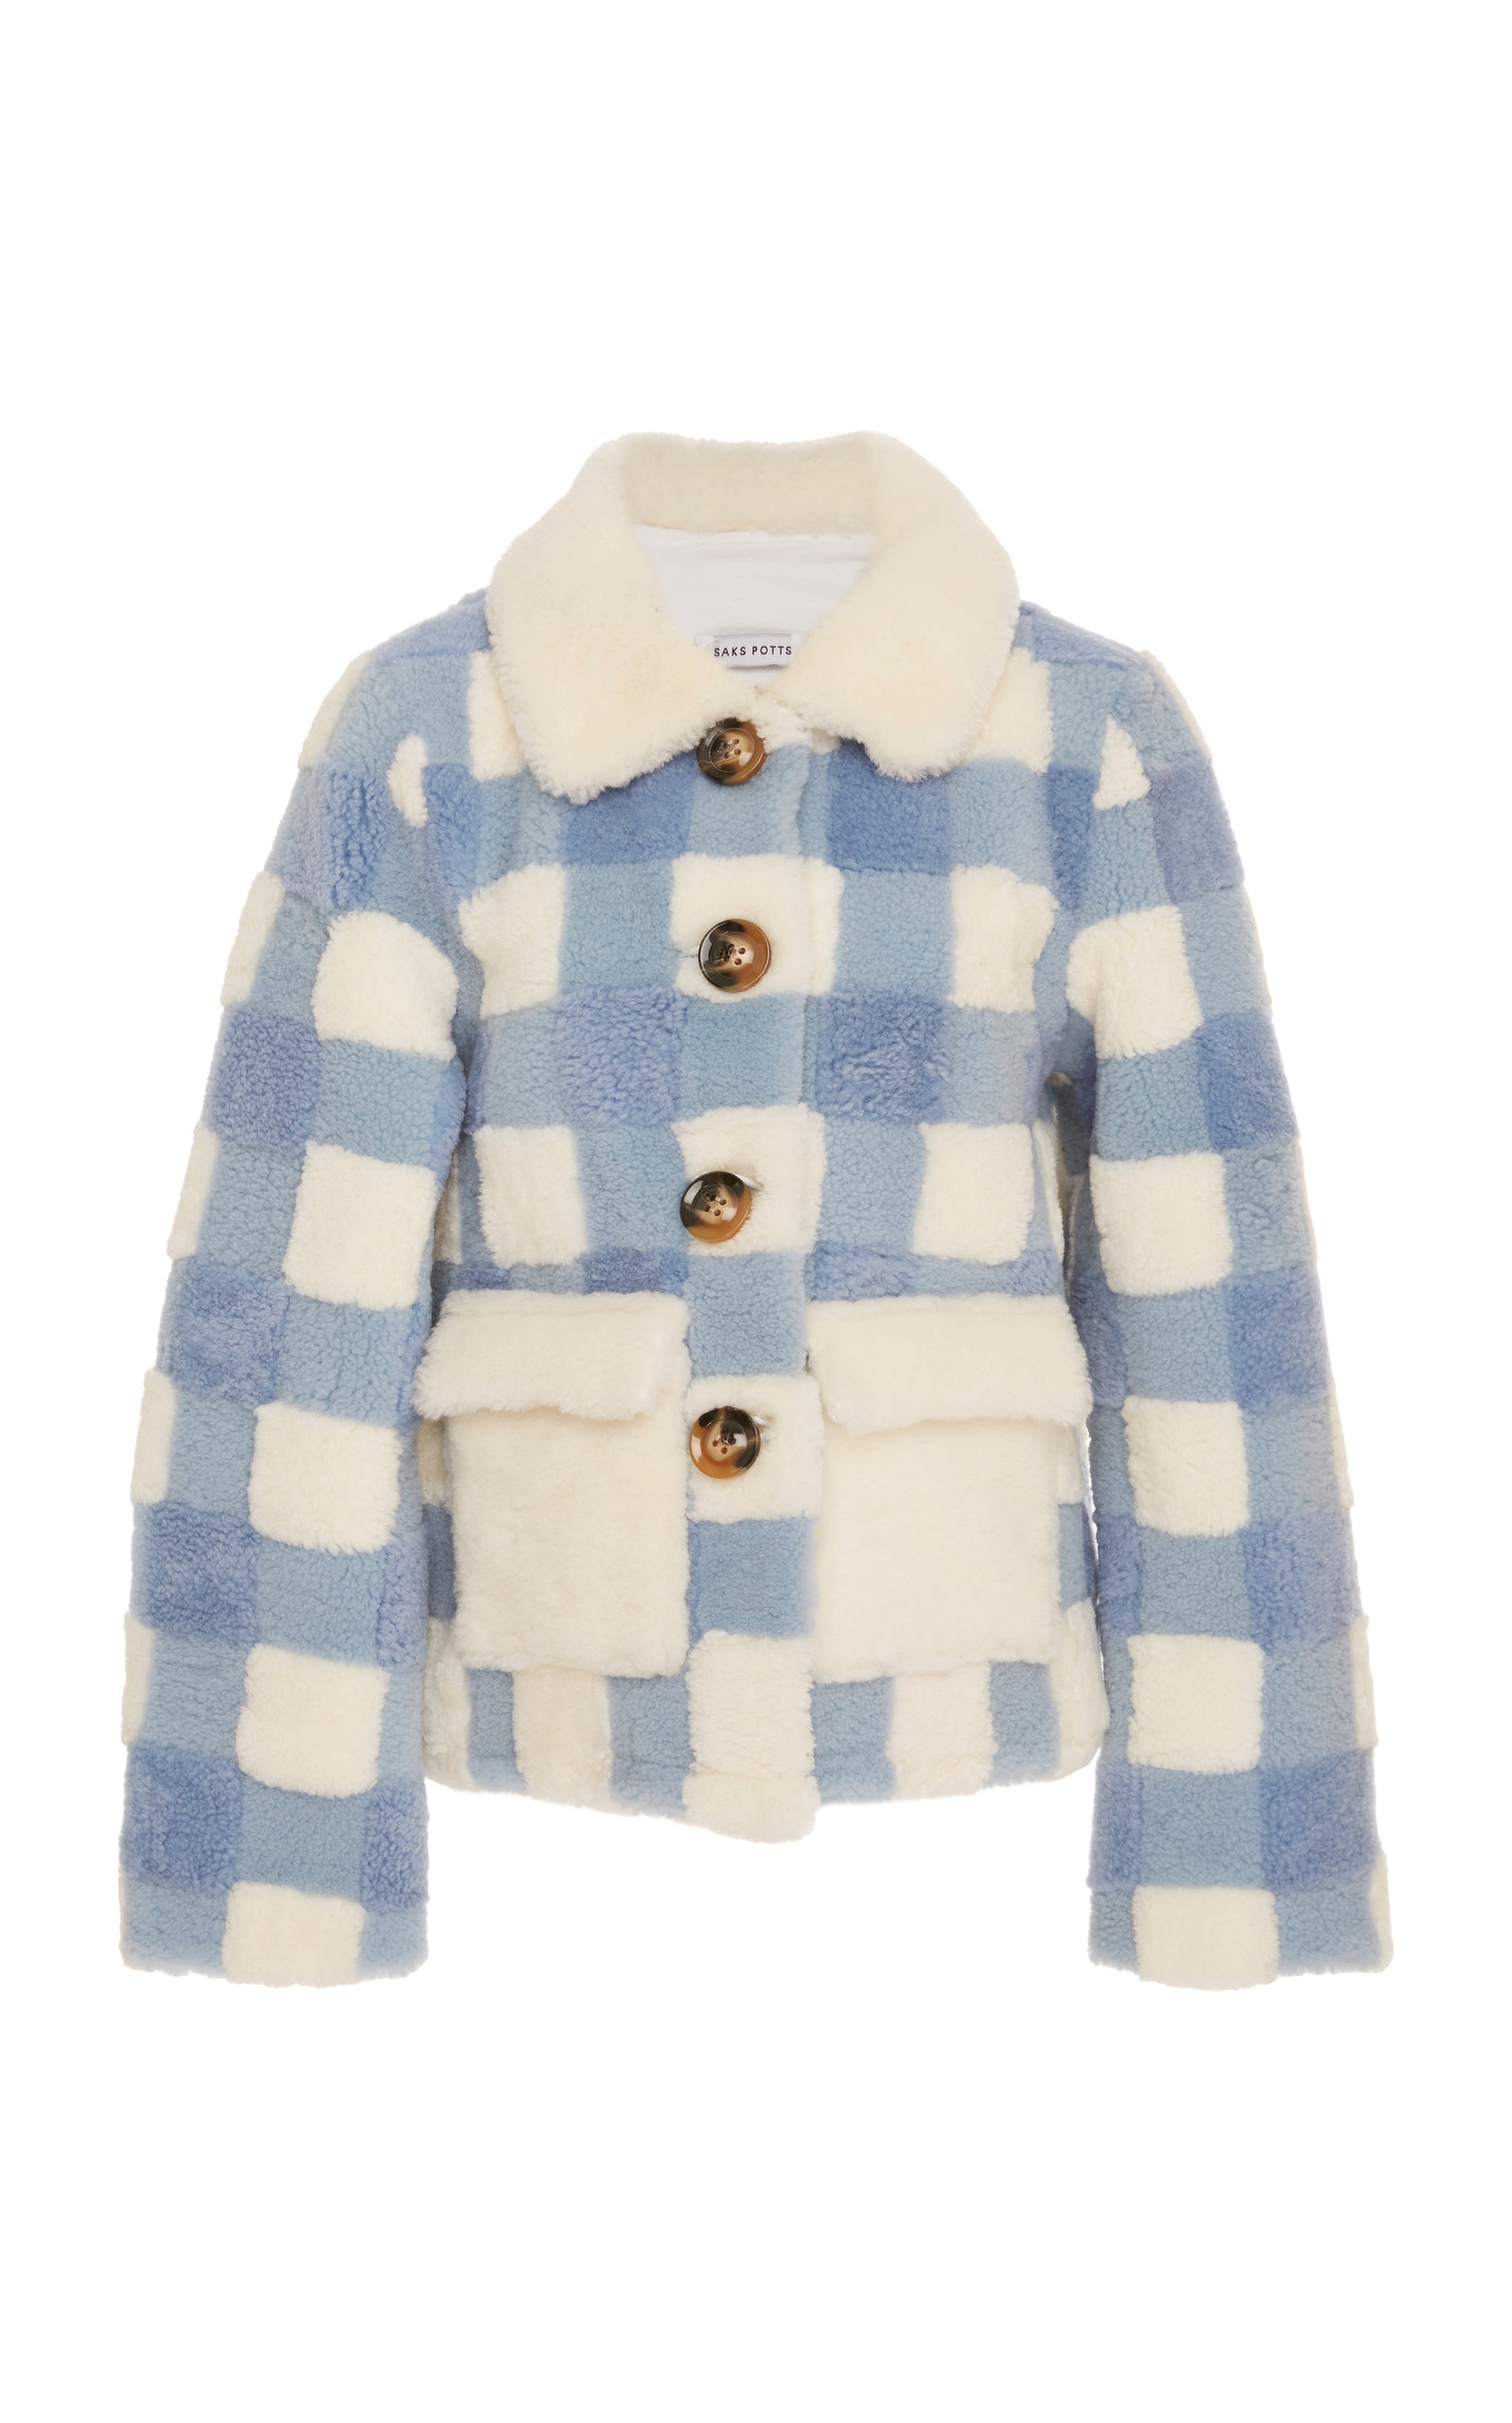 SAKS POTTS Lucy Checked Shearling Jacket in Blue